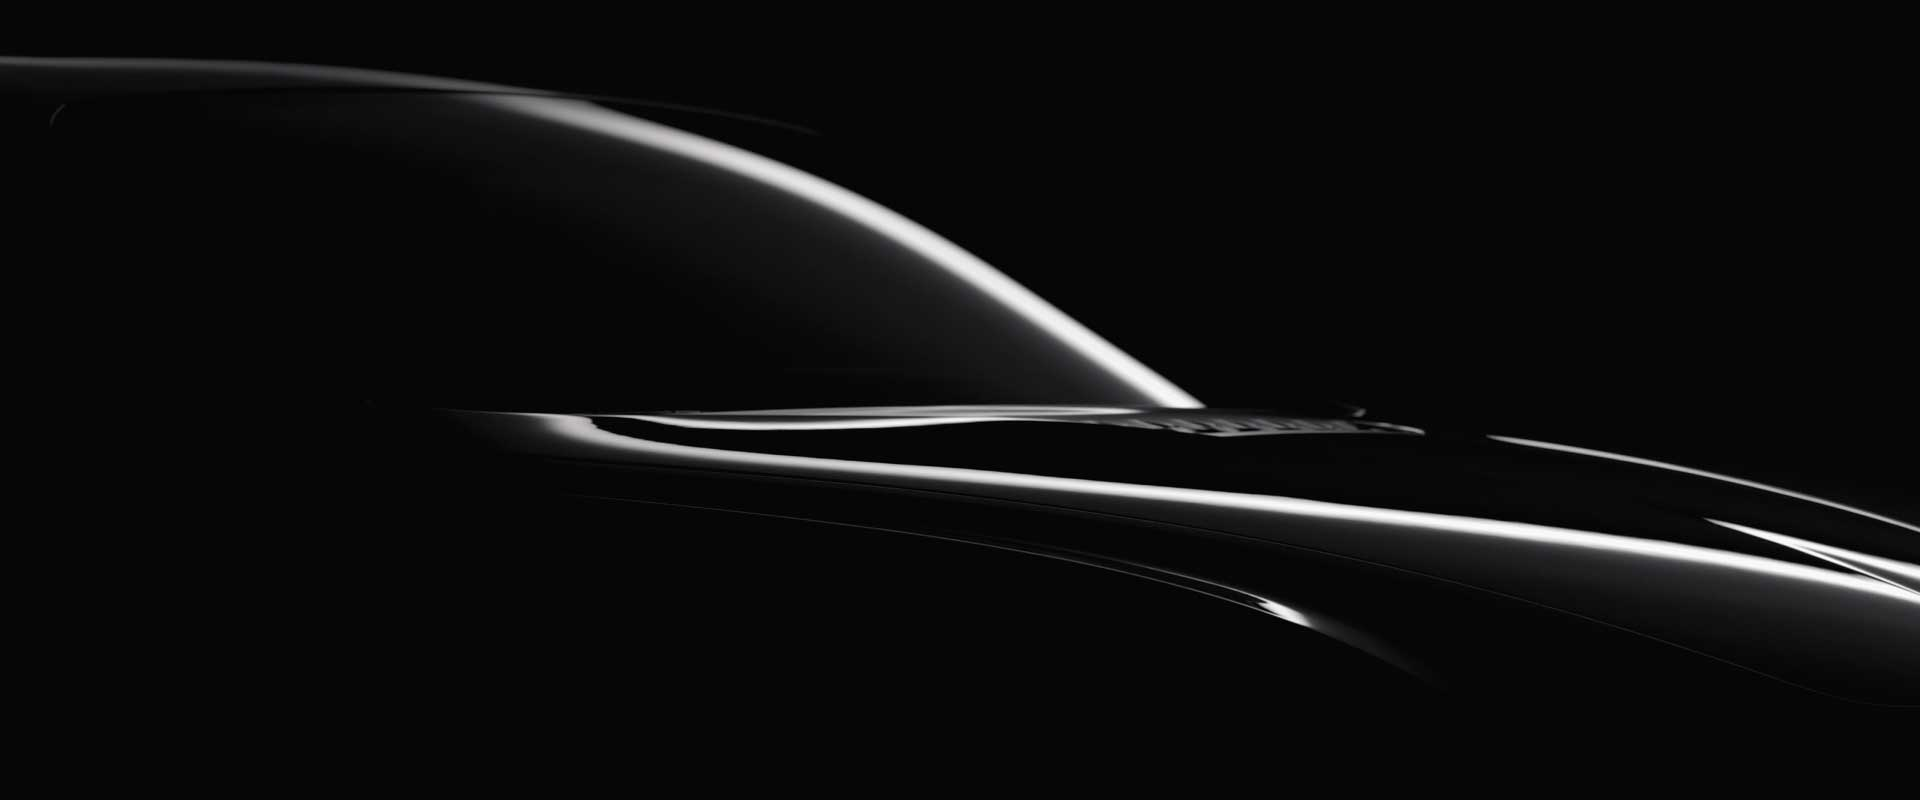 Design detail car siedview. Still from Hyundai Genesis commercial.